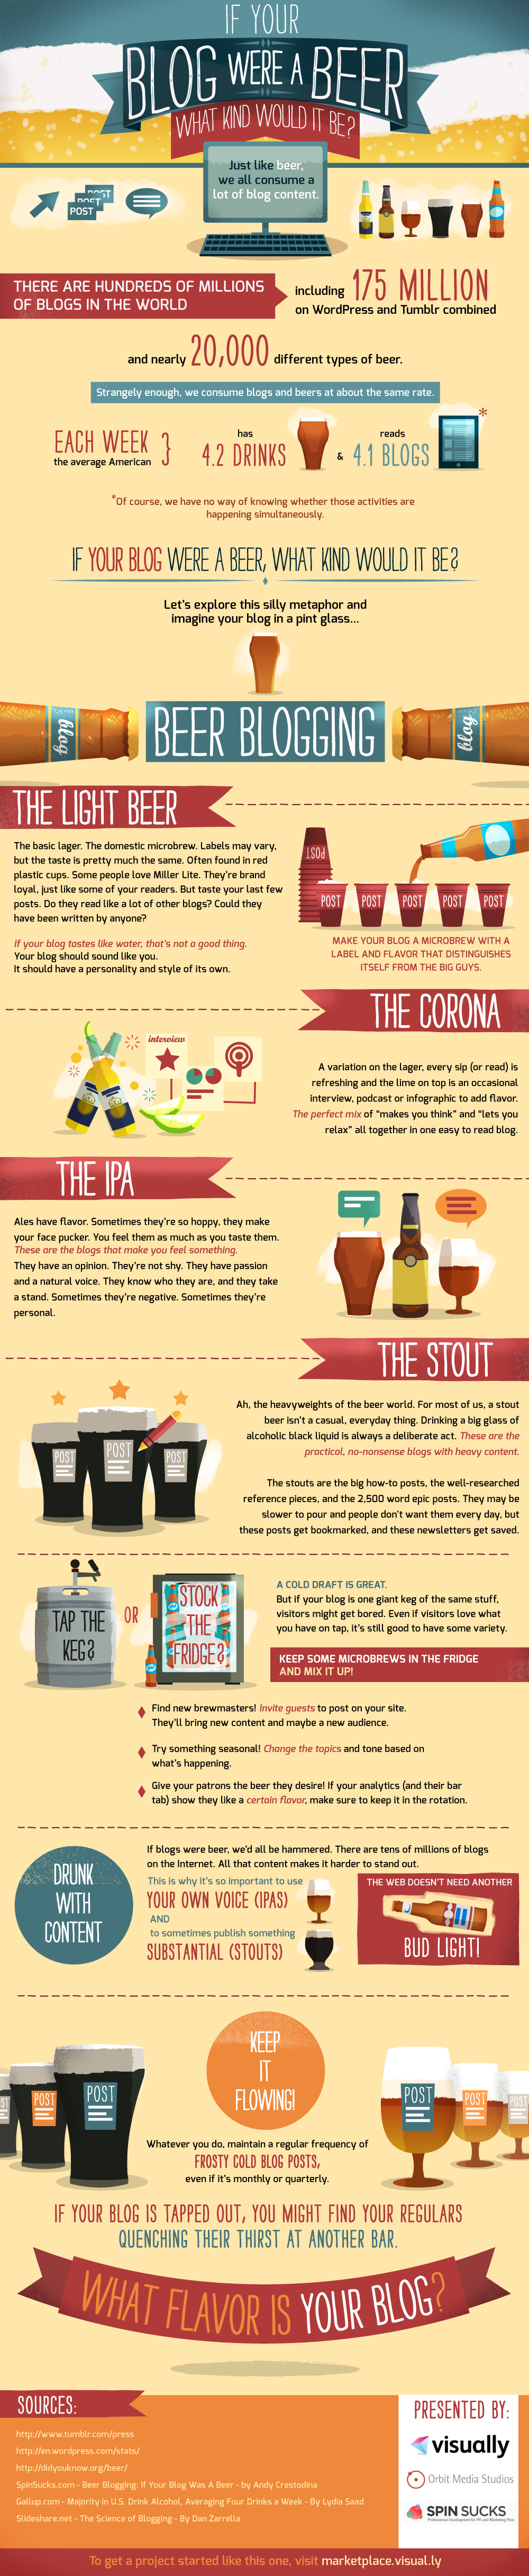 If Your Blog Were A Beer, What Kind Would It Be?